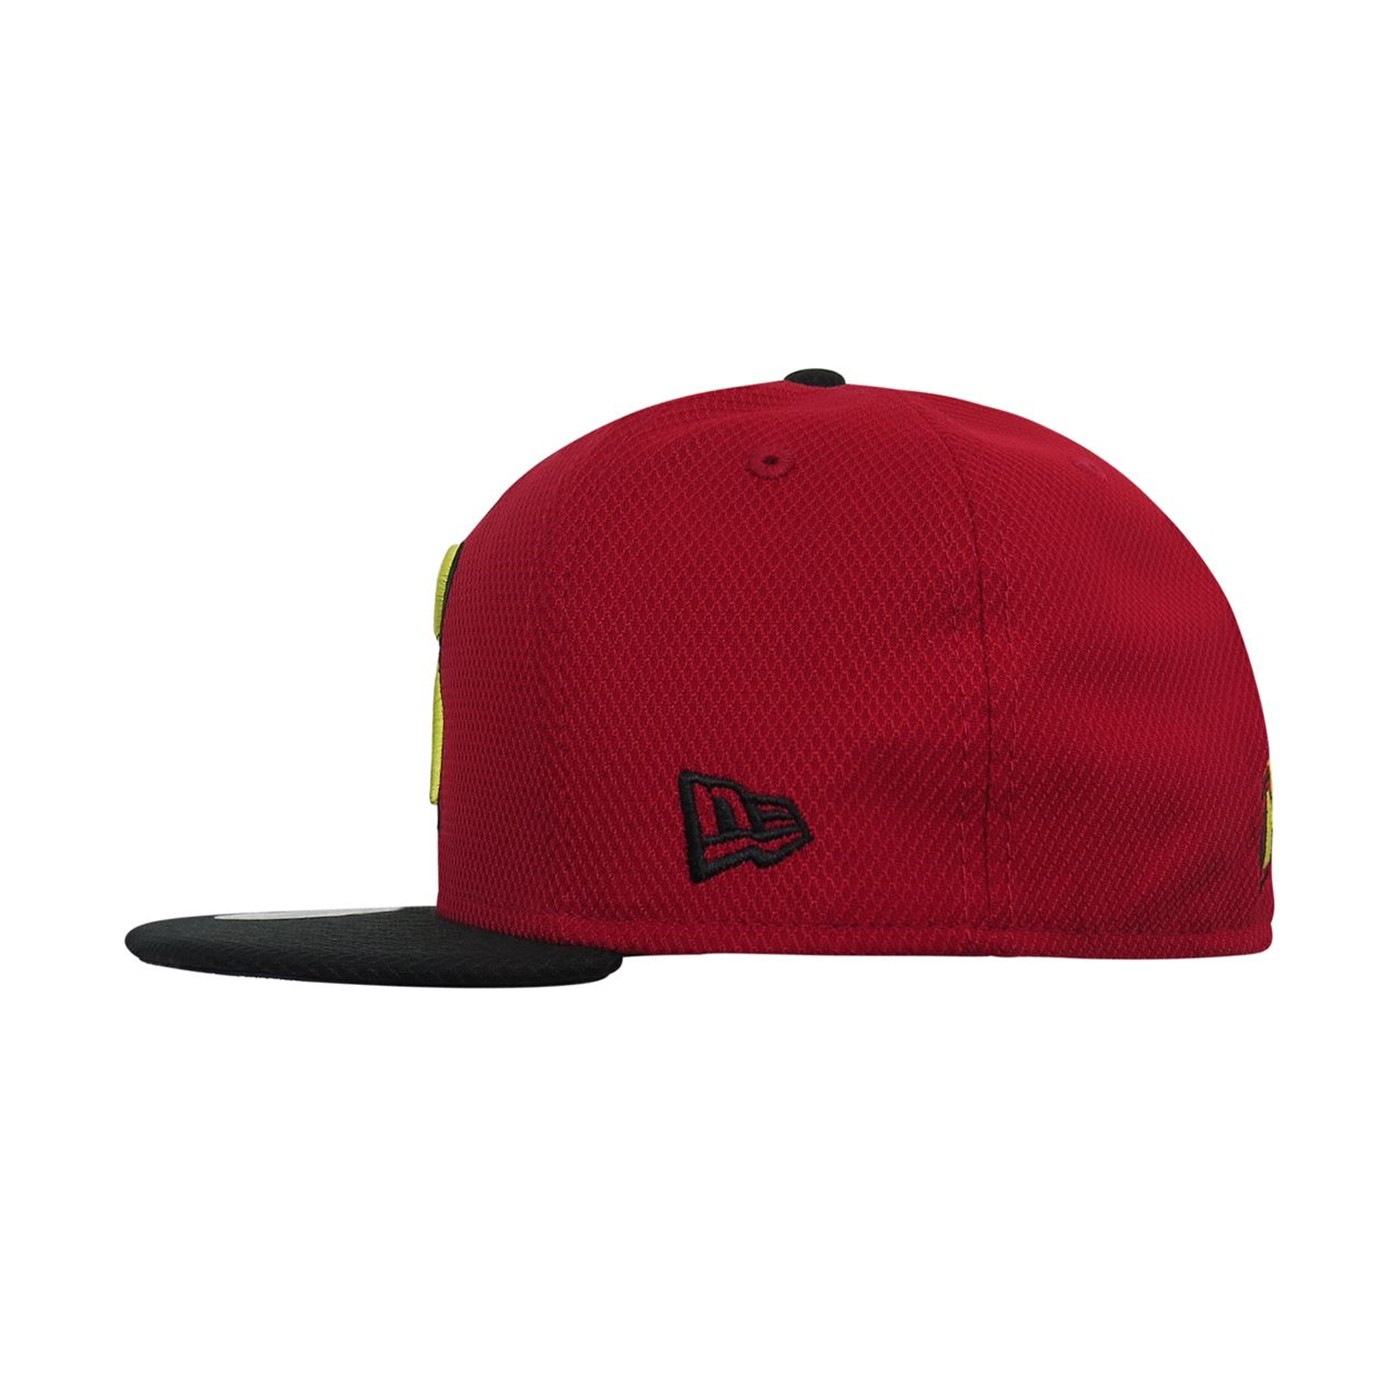 Robin Symbol Red 59Fifty Fitted Hat